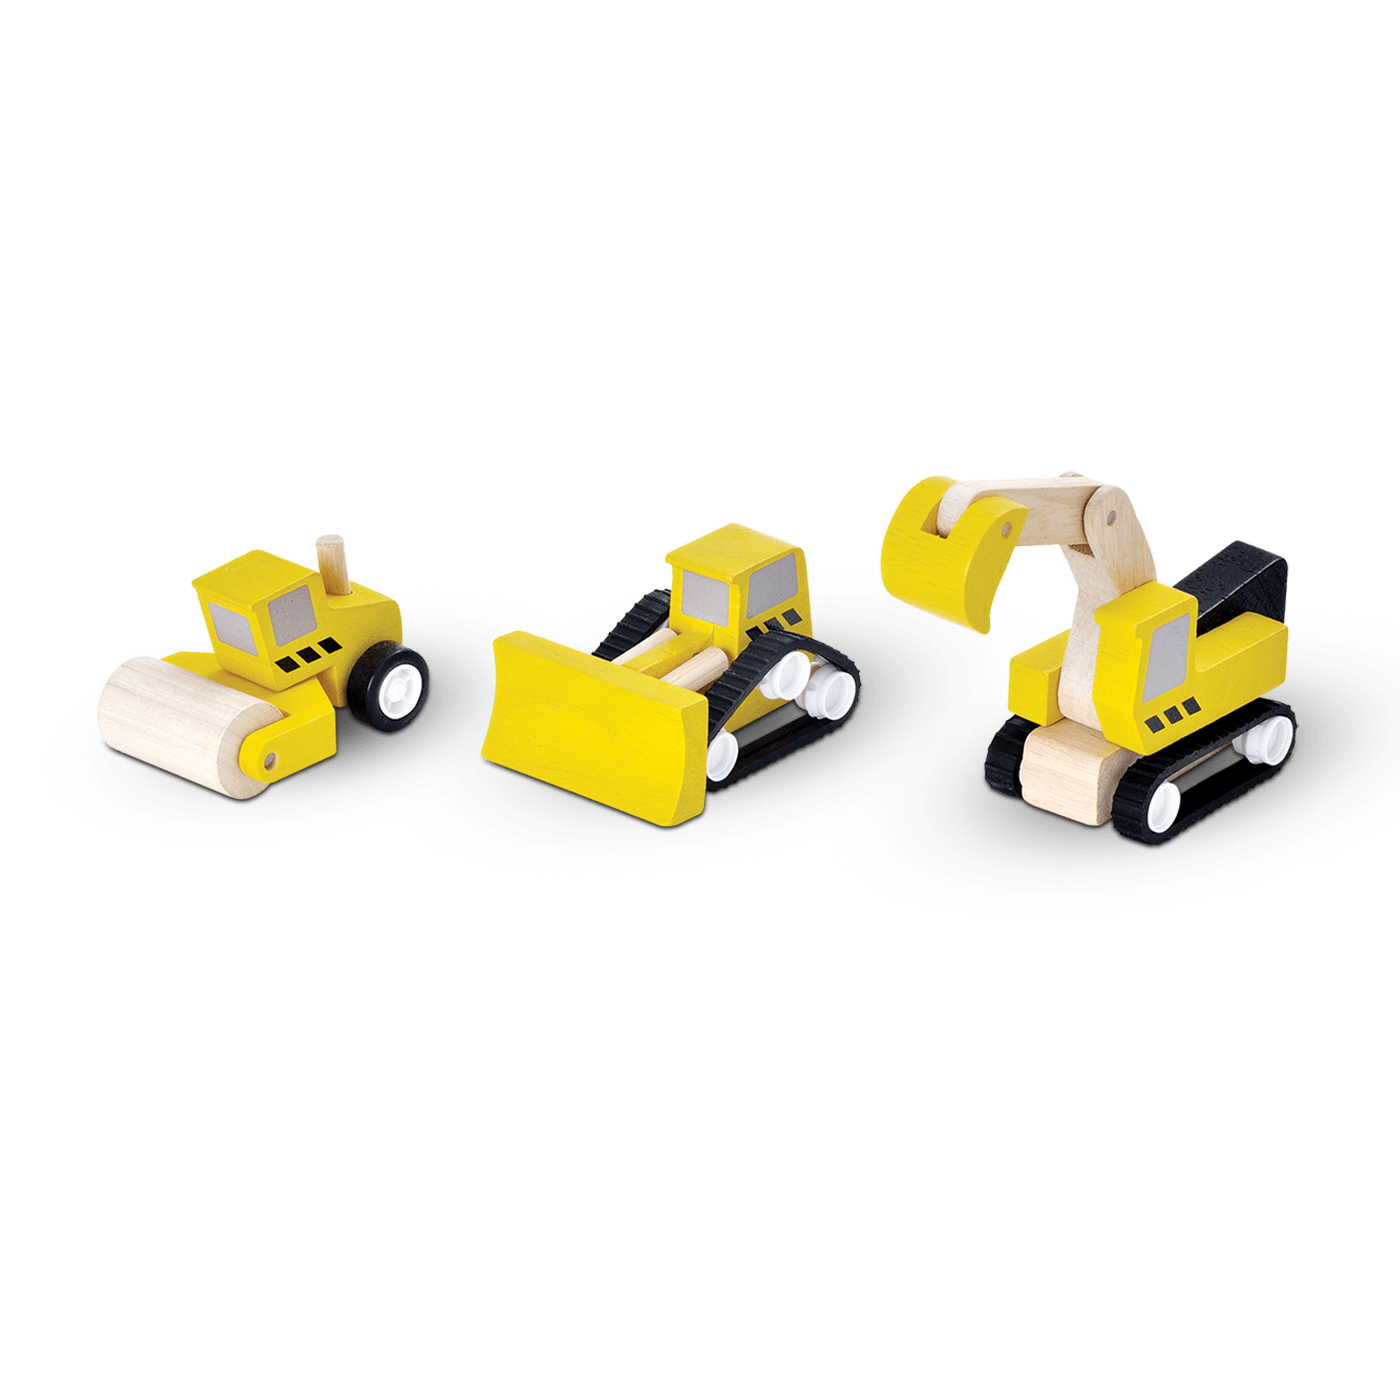 6014_PlanToys_ROAD_CONSTRUCTION_SET_Pretend_Play_Imagination_Social_Language_and_Communications_Fine_Motor_3yrs_Wooden_toys_Education_toys_Safety_Toys_Non-toxic_0.png